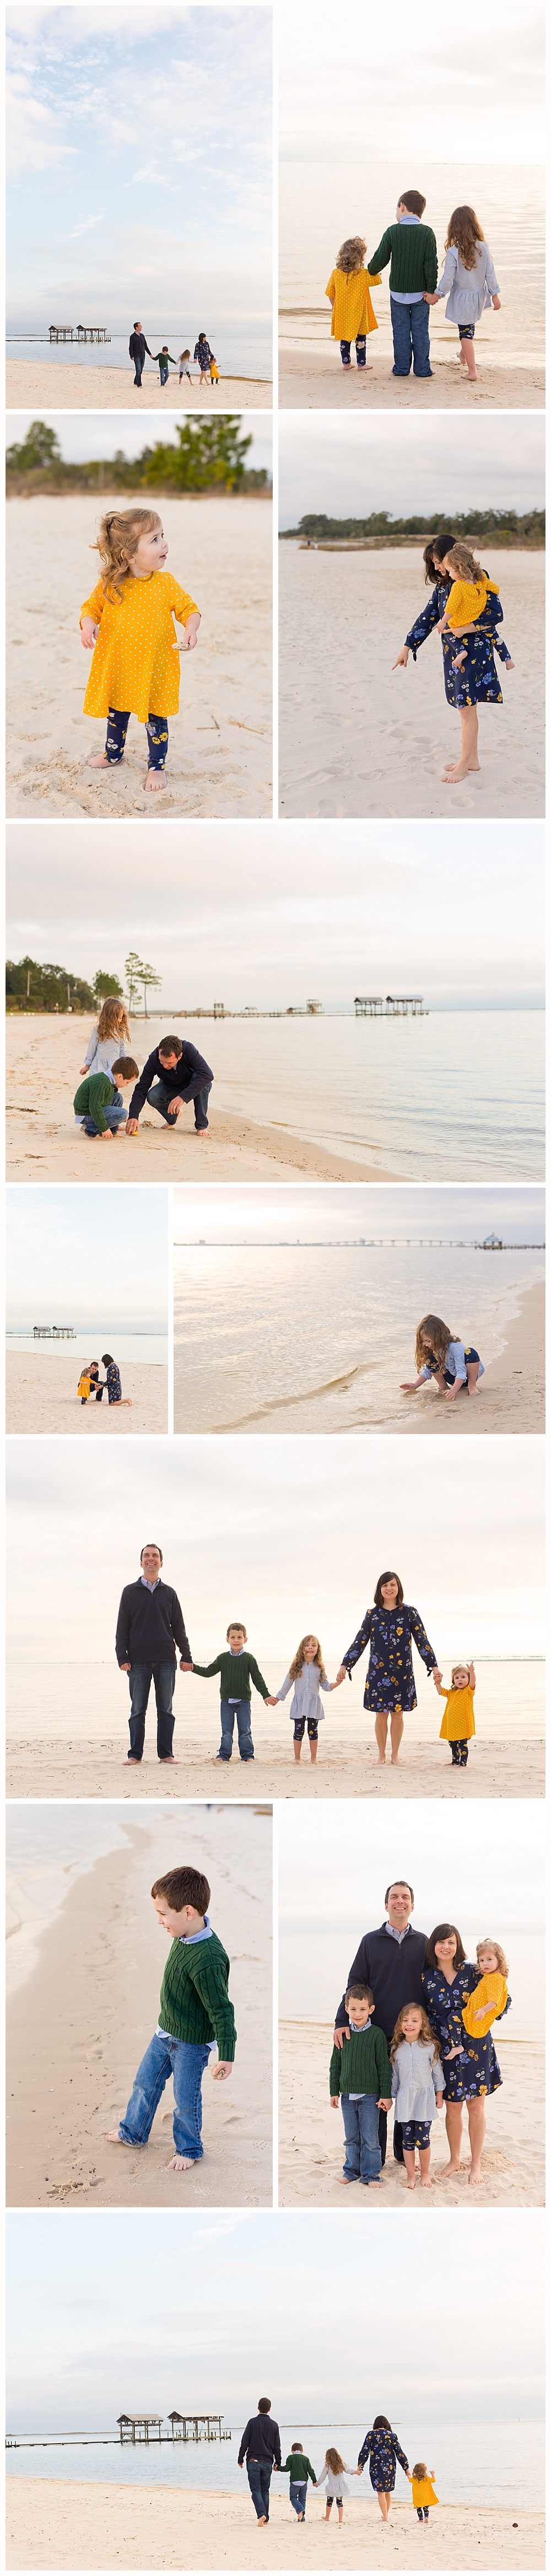 family pictures at the beach - Ocean Springs family photographer